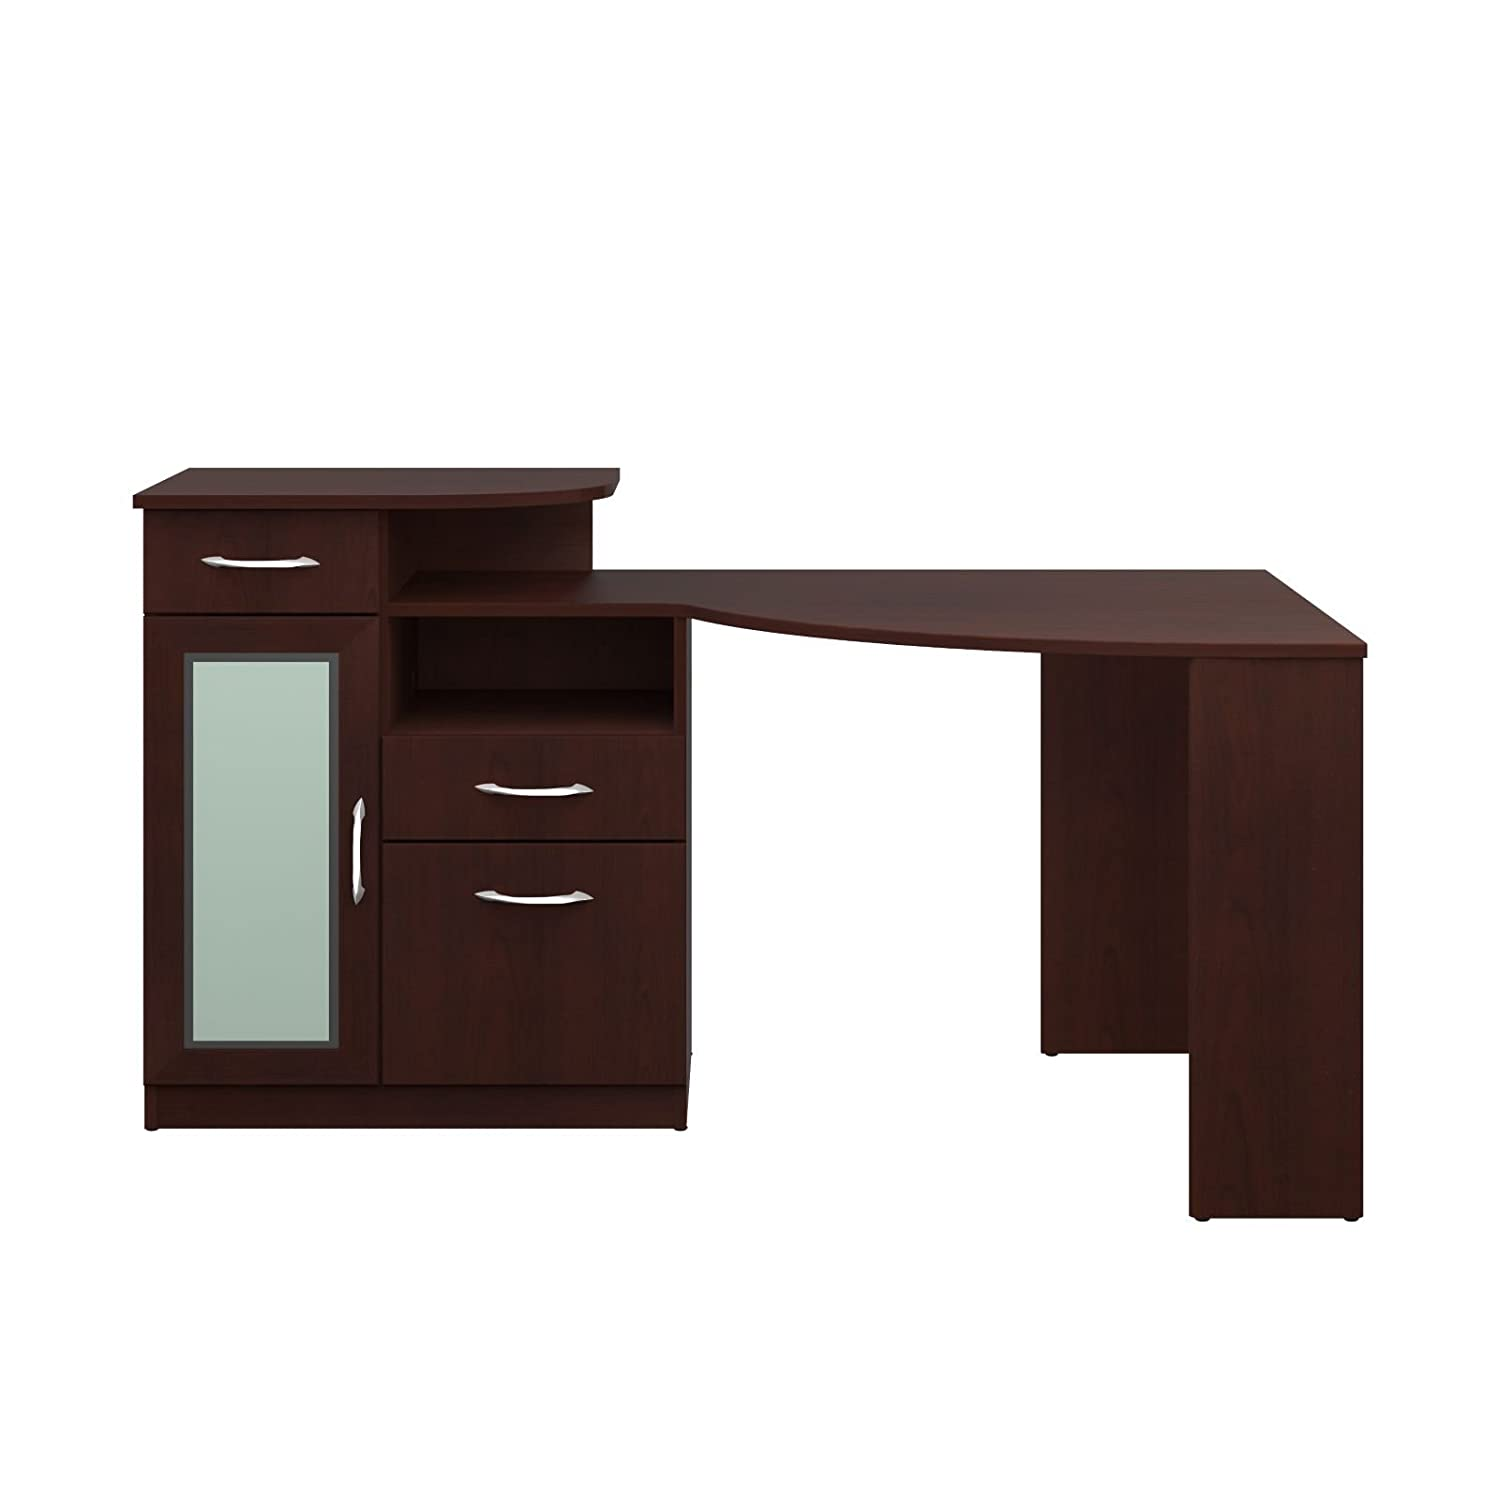 oak home for desks with and corner drawers modern design cabinets in ideas delectable drawer desk built keyboard